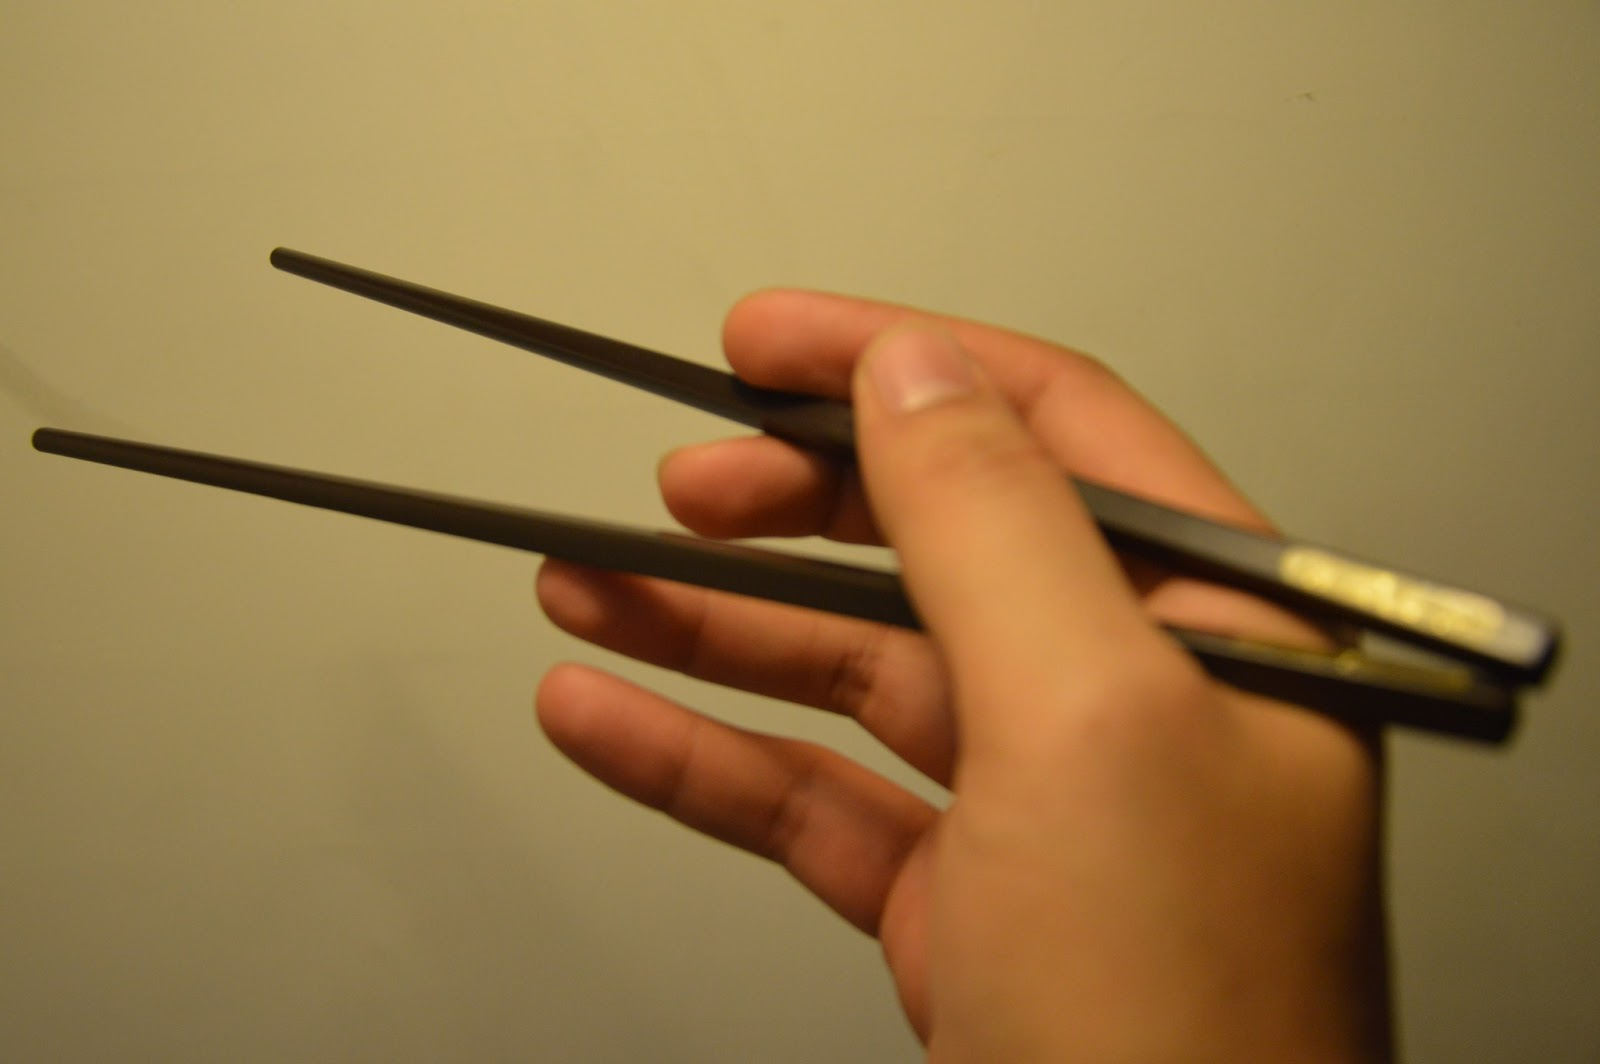 holding the chopsticks